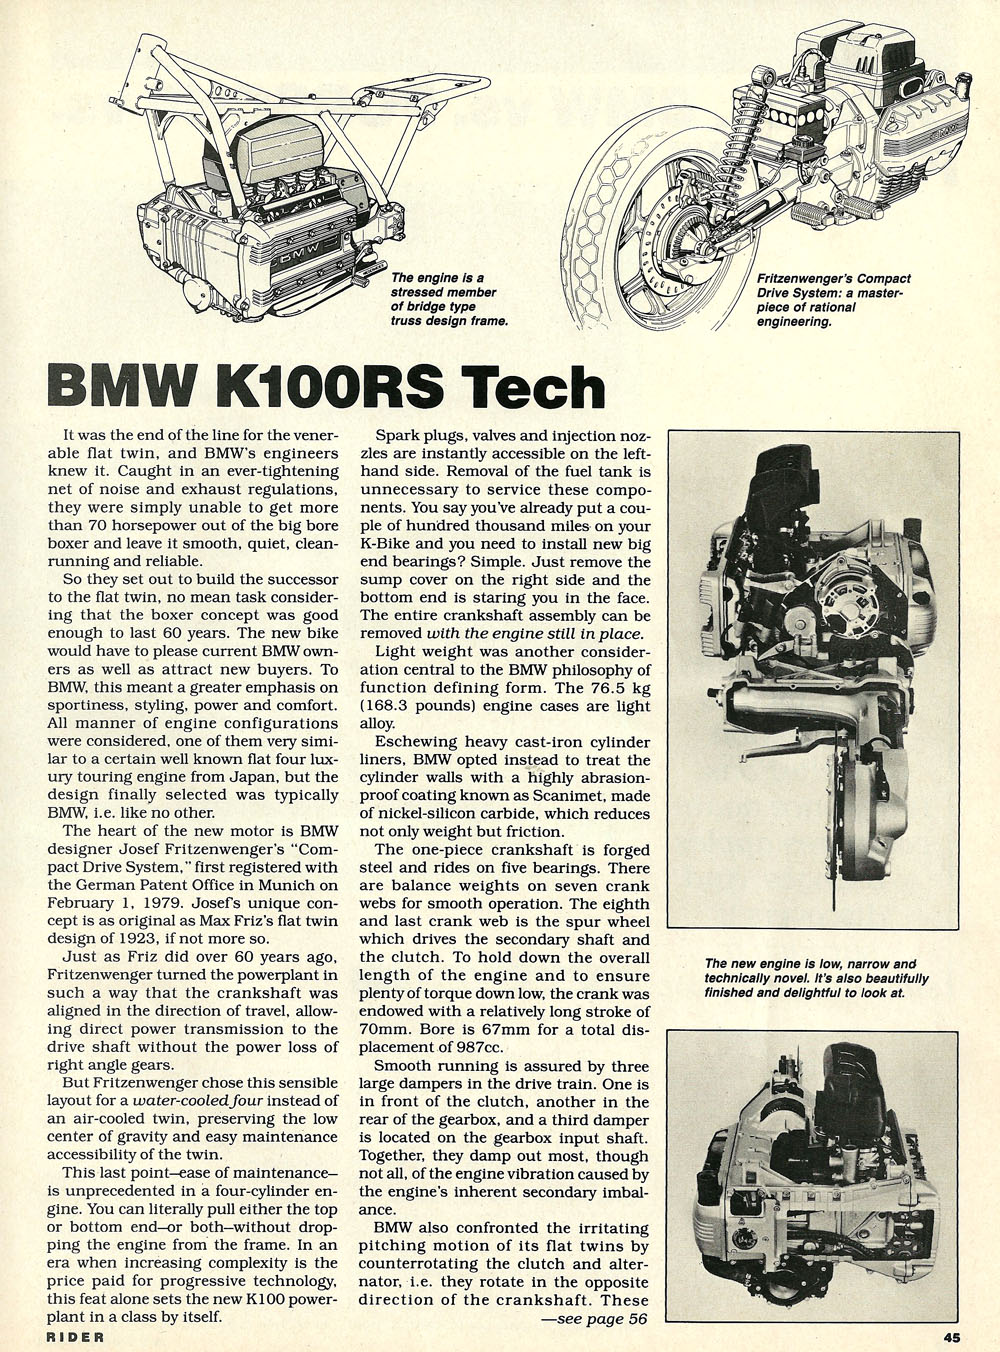 1984 bmw k100rs tech 01.jpg